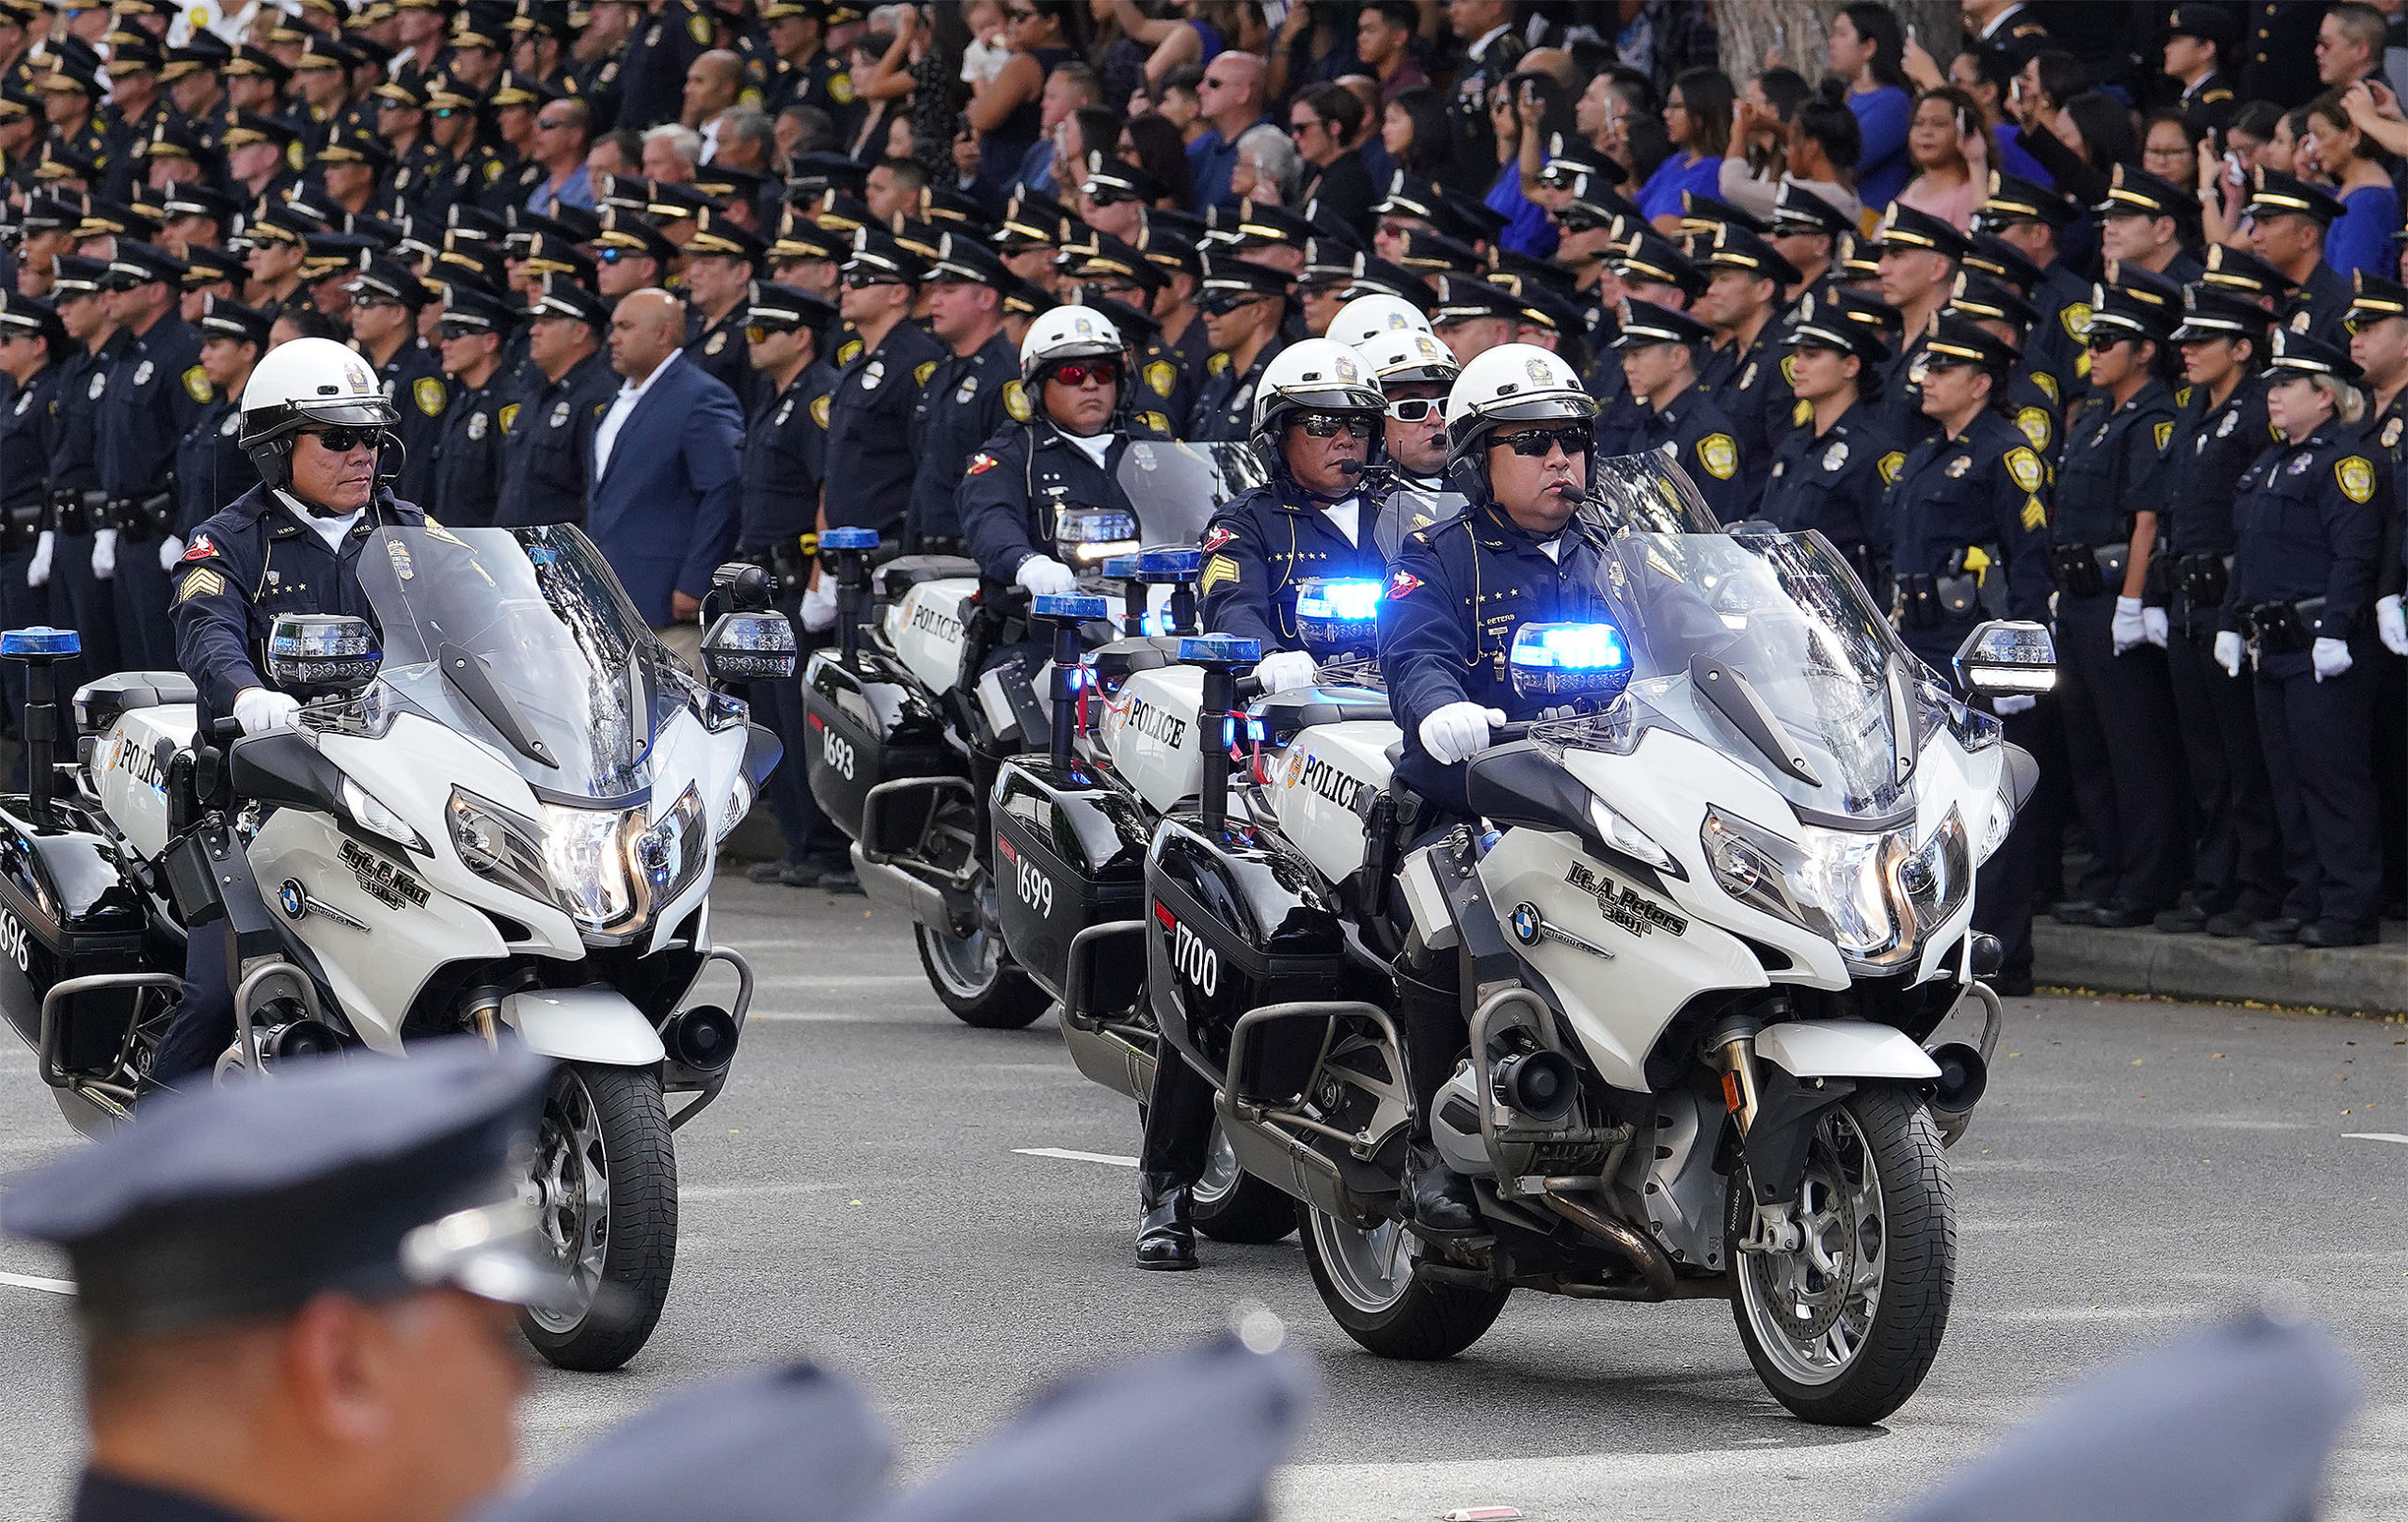 <p>A procession of vehicles arrived at the Honolulu Police Department headquarters at 801 S. Beretania St. Law enforcement personnel from not only Hawaii but across the country traveled to Honolulu, including those representing police departments in Aurora, Colo., Anaheim, Calif., Seattle and San Francisco.</p>